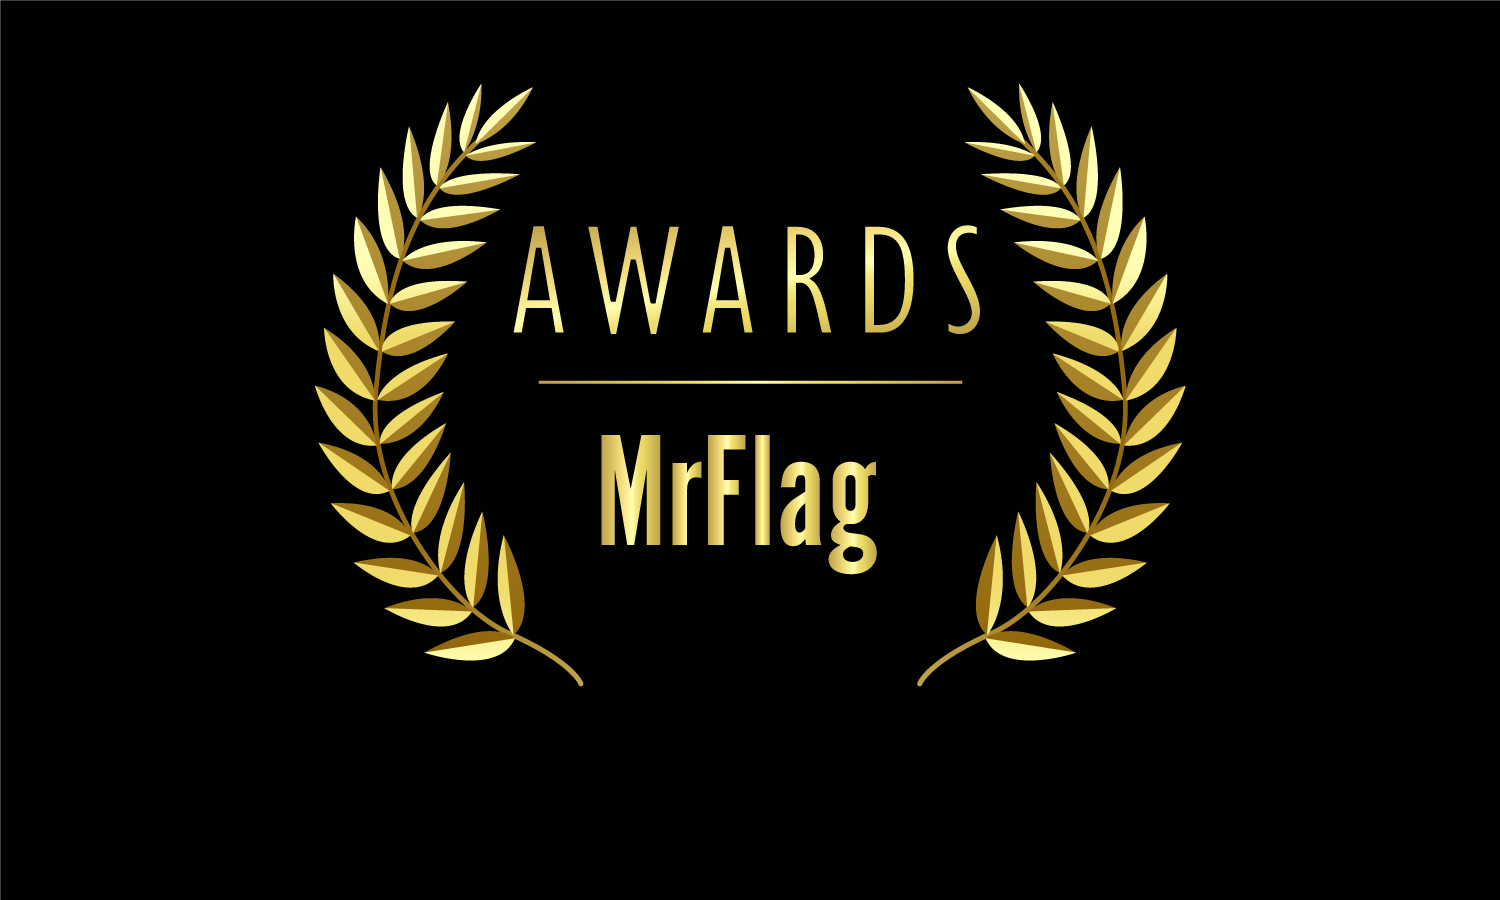 We're Online Flag Retailer of the Year.